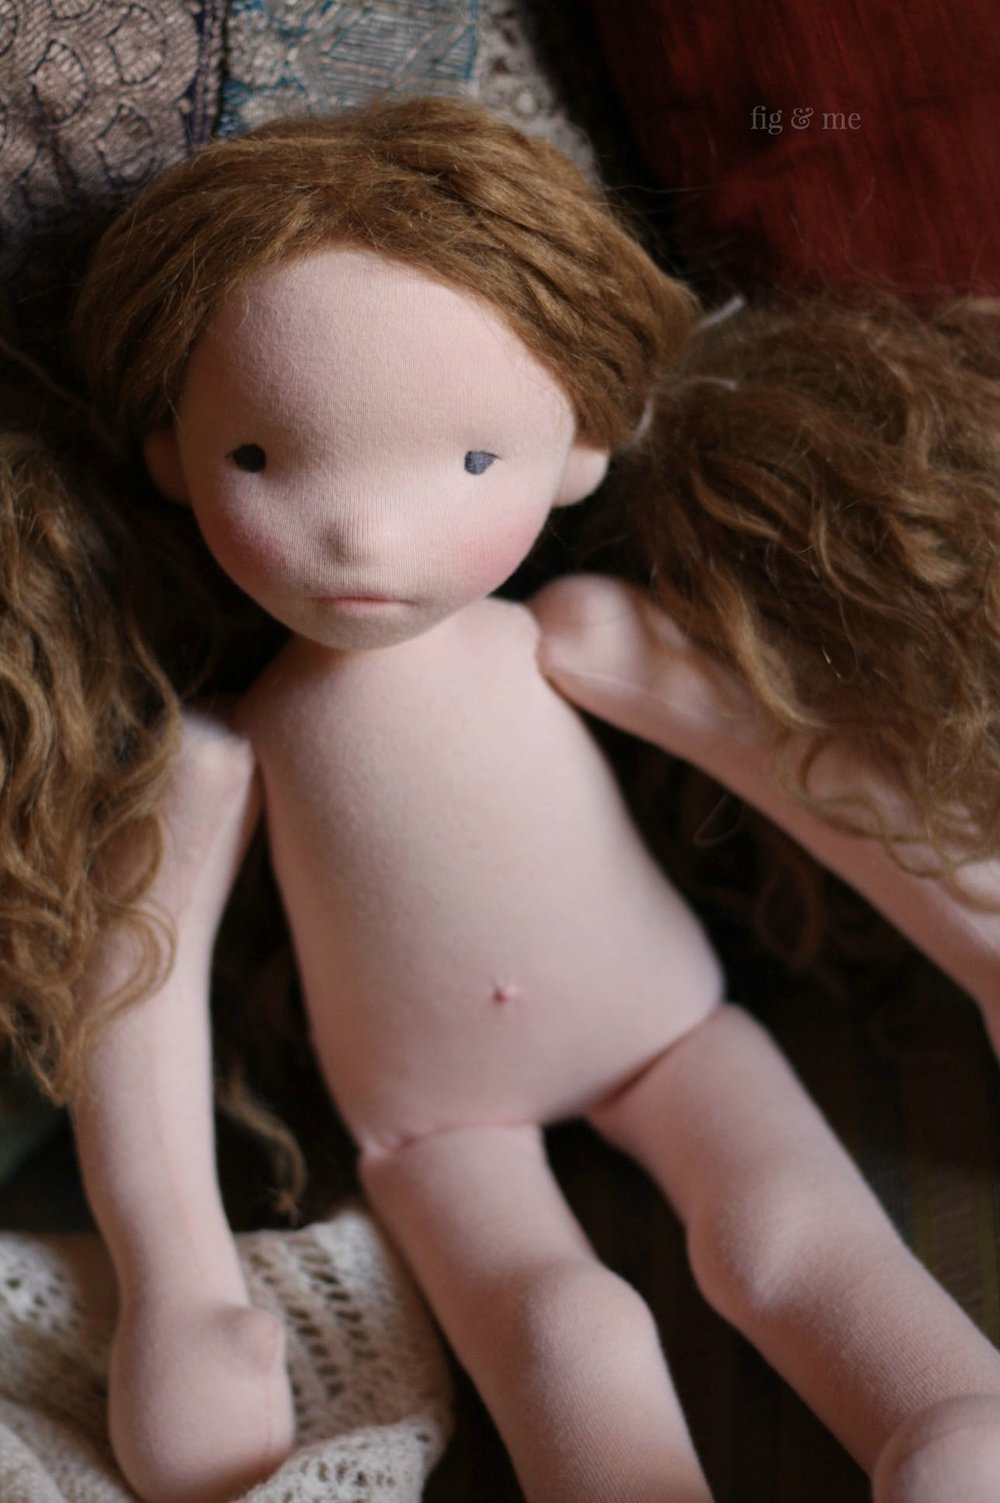 Doortje, a natural cloth doll by Fig and Me.